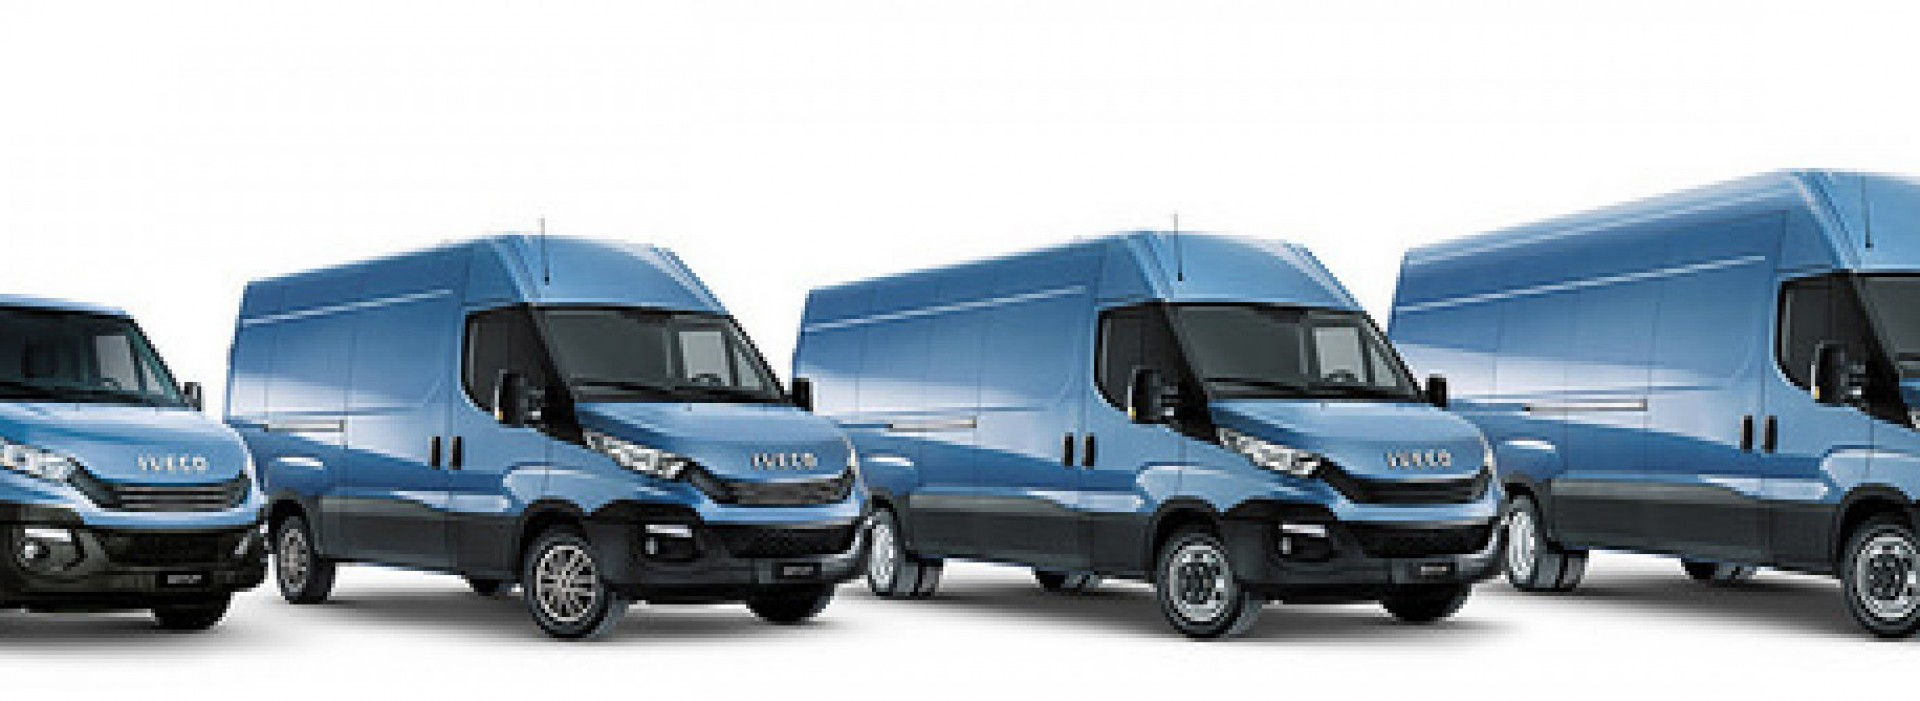 Alquiler Coches Madrid